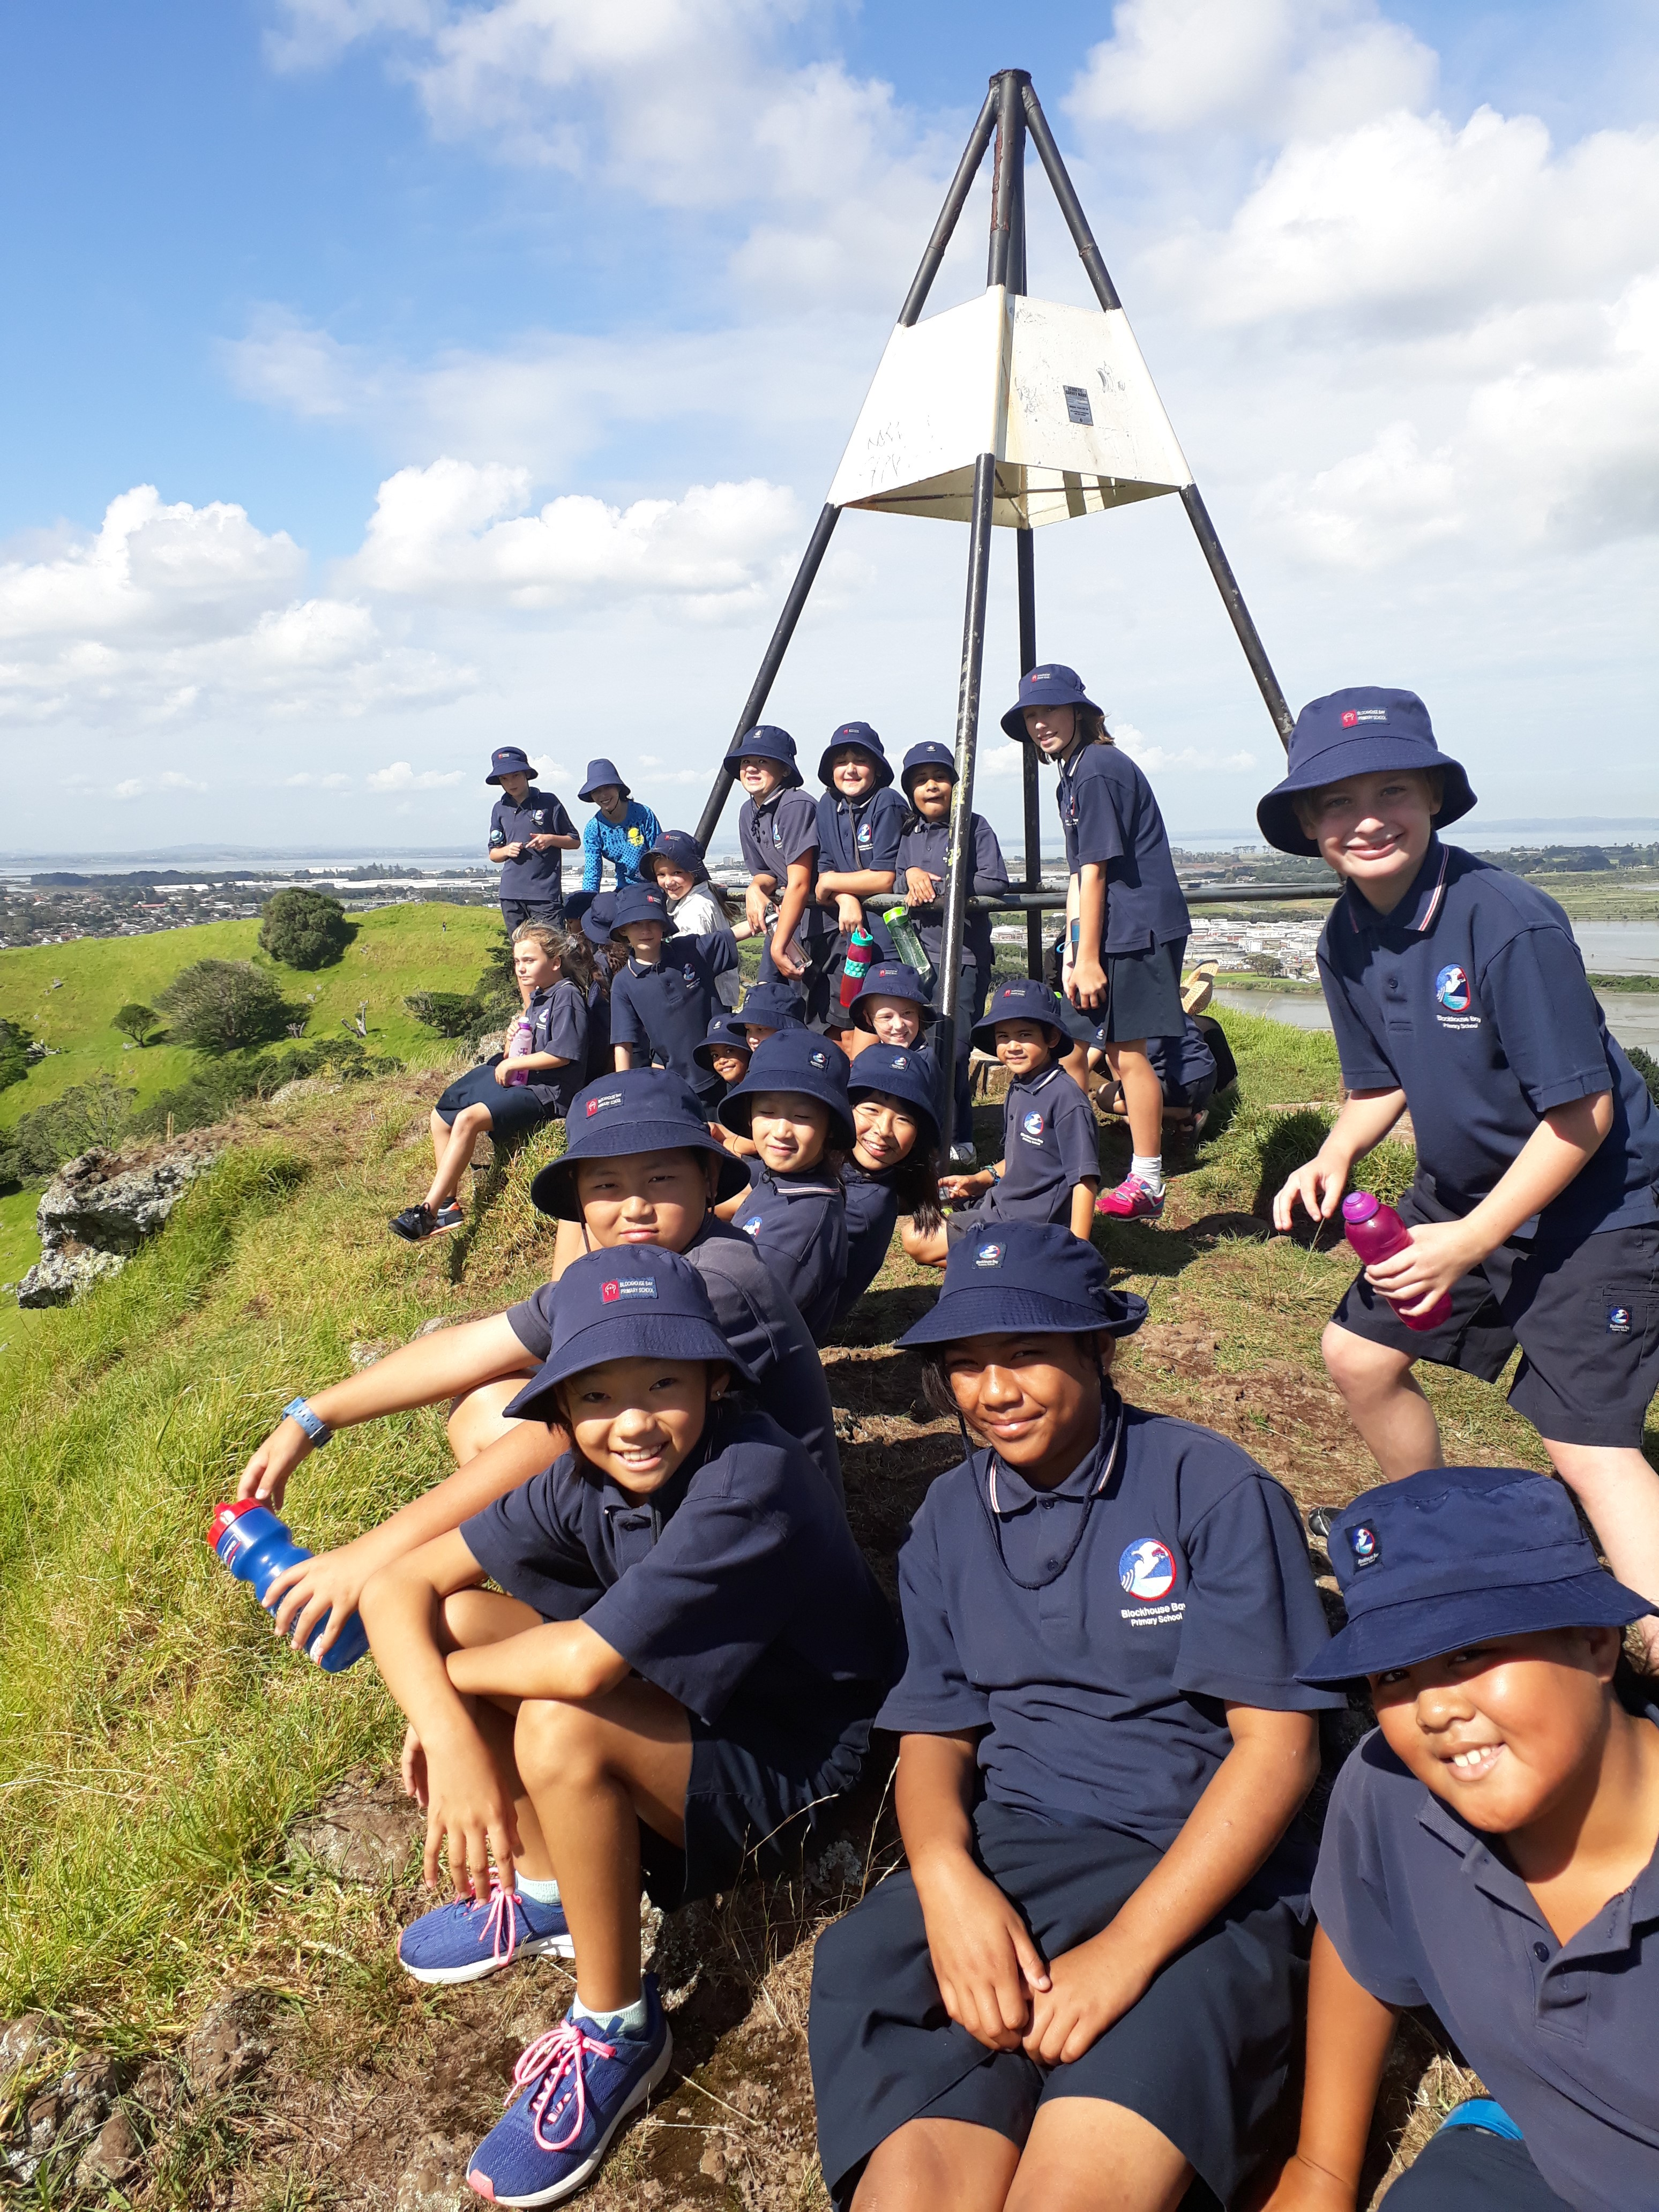 Blockhouse Bay Primary School - Tukana teina Te Pane o Mataoho R13 and R5